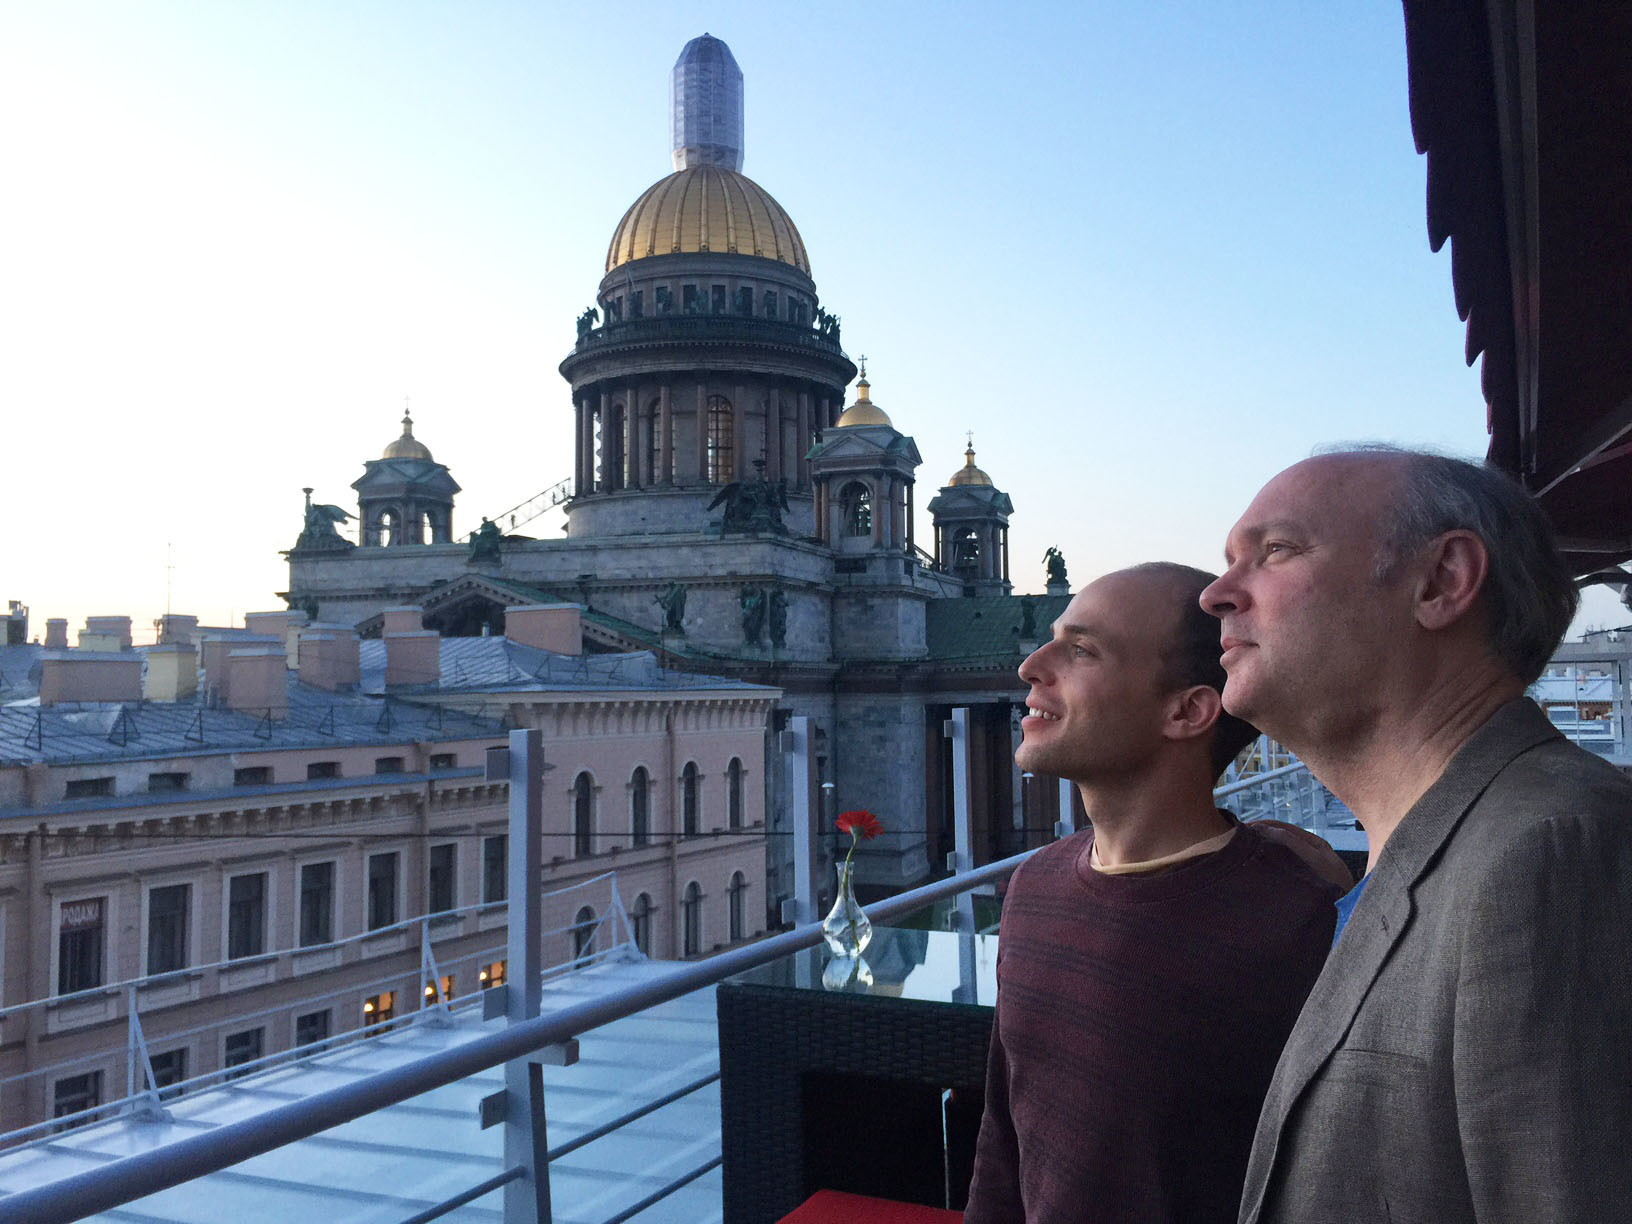 Orion Weiss and Paul Neubauer admiring St. Petersburg